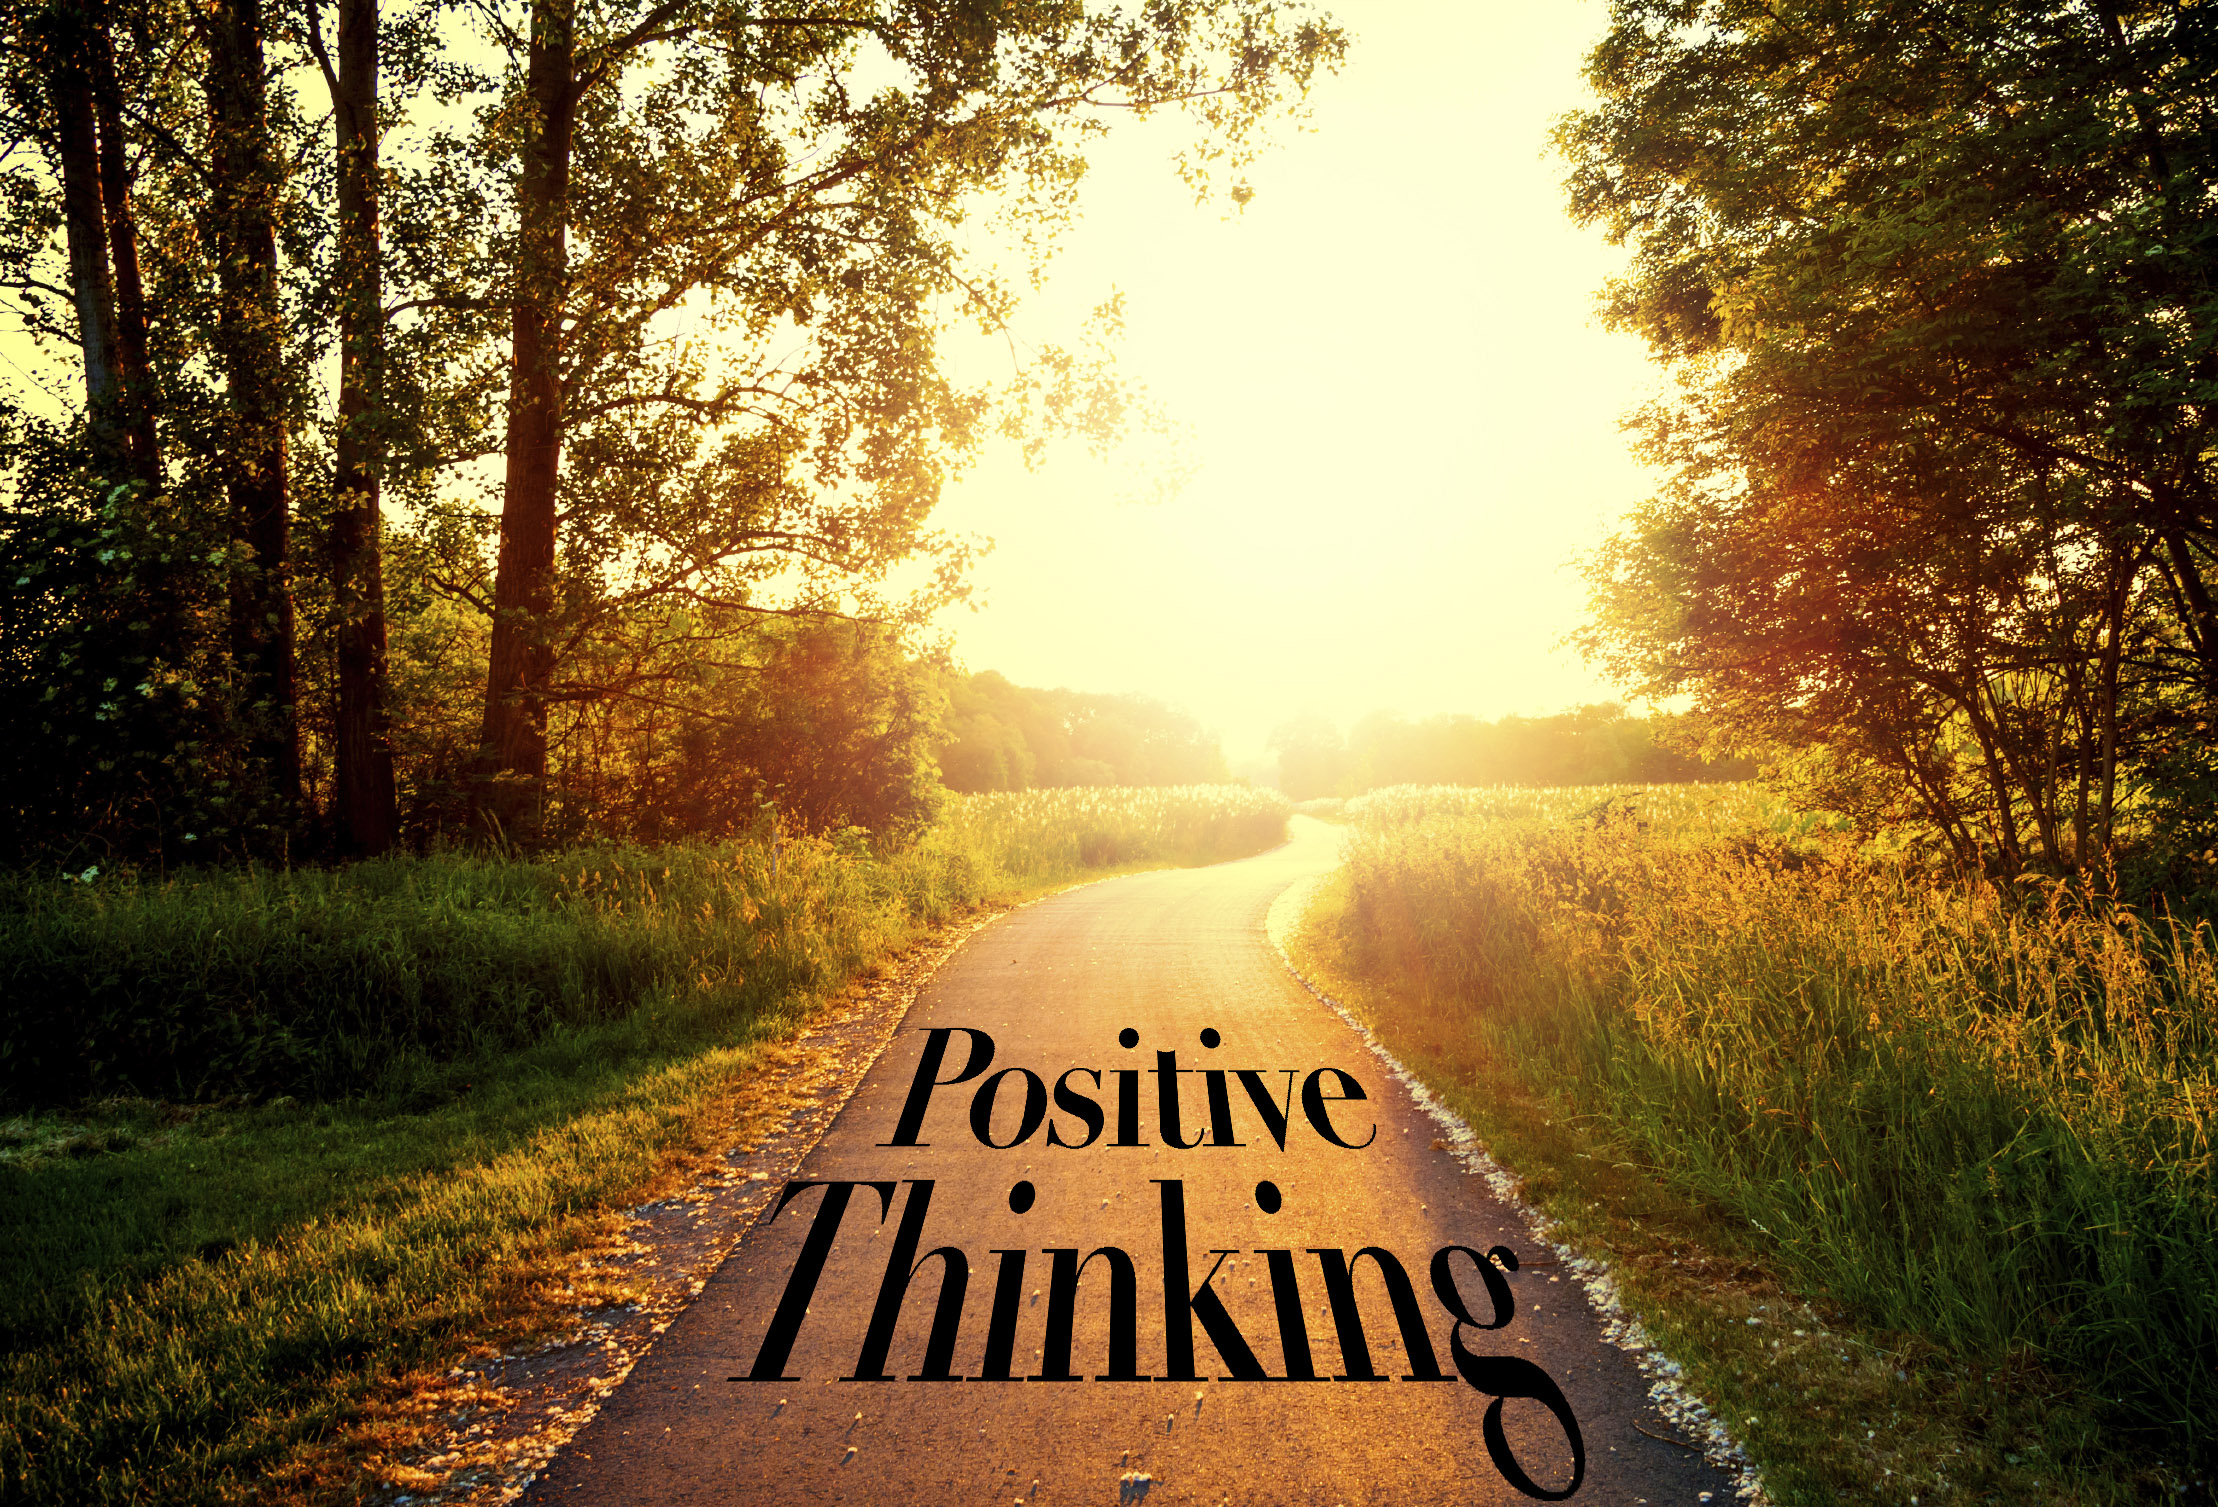 Poitive thinking